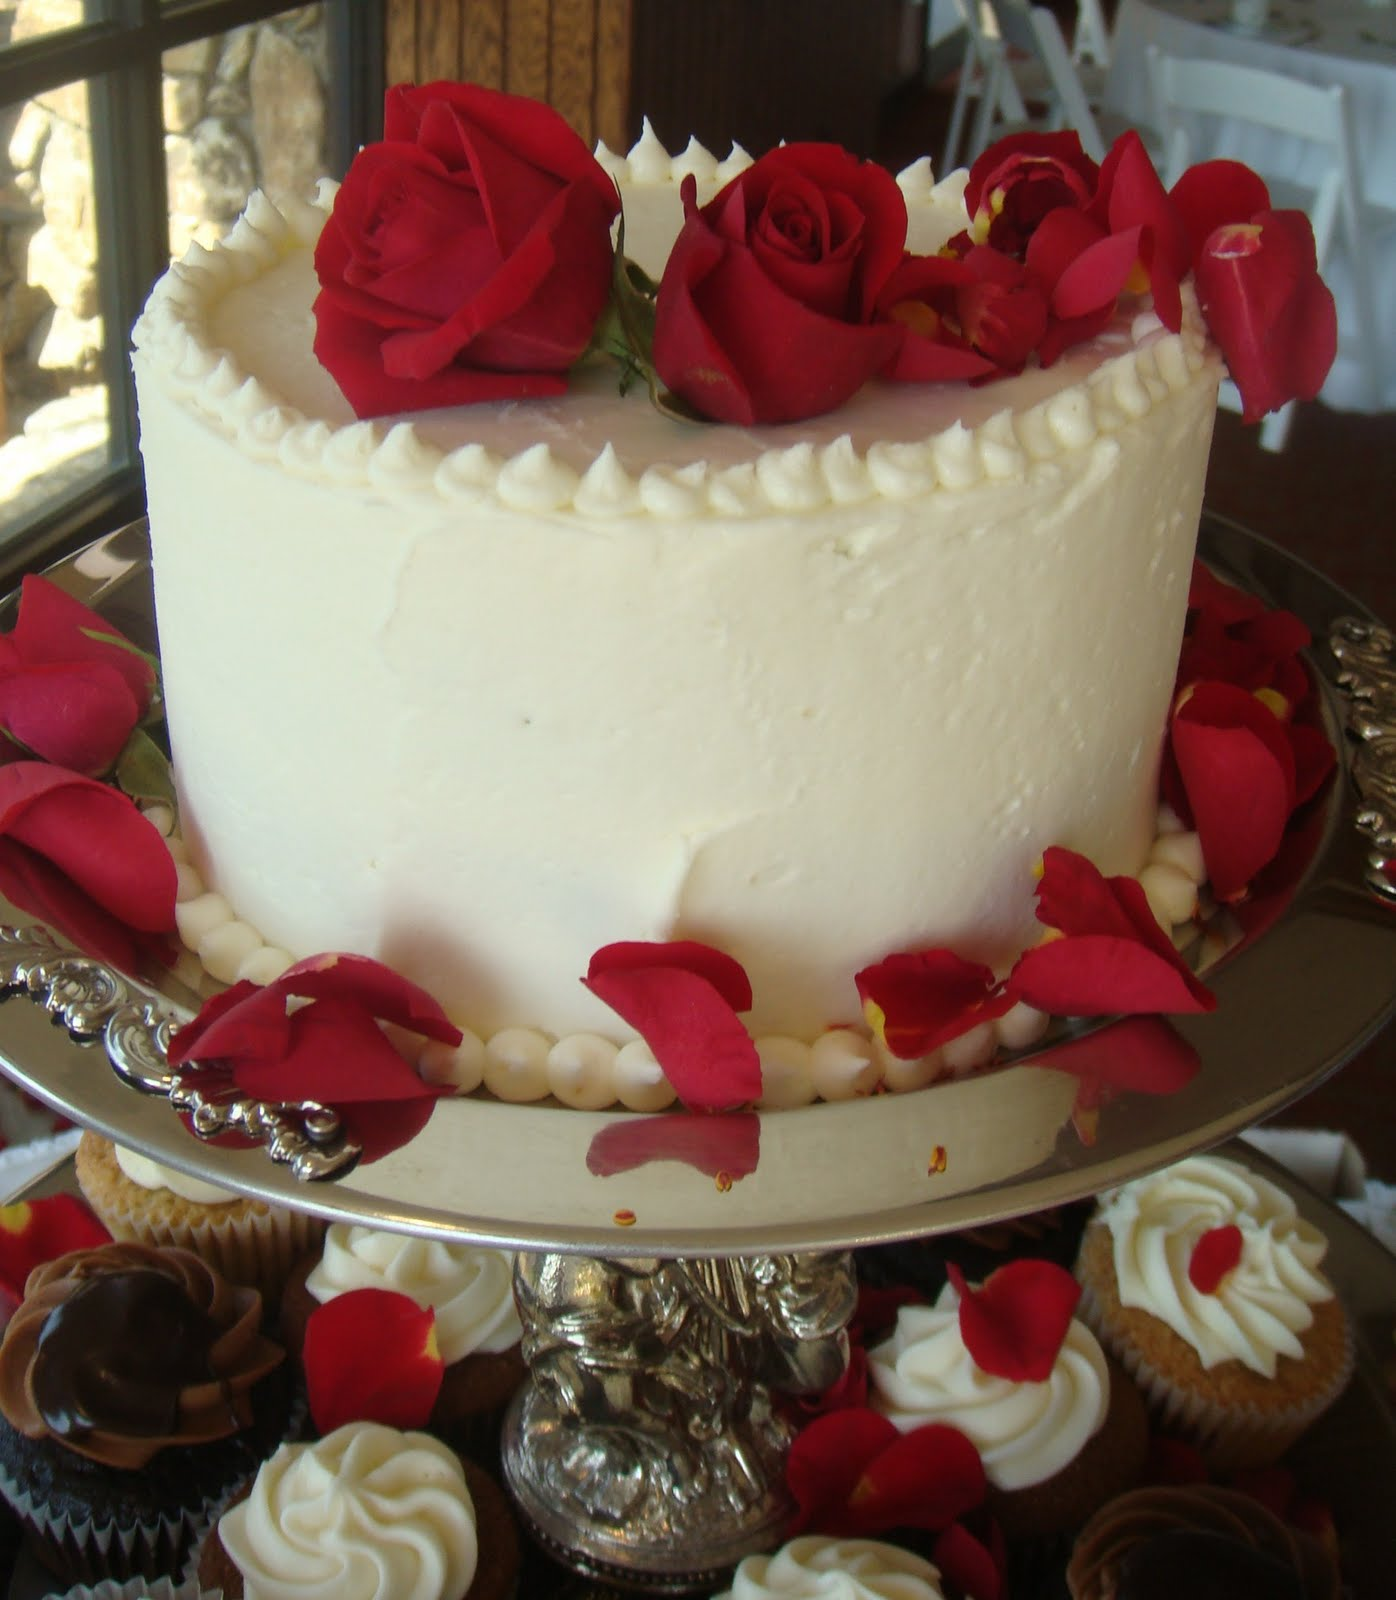 Cake Decorating Weekend Course